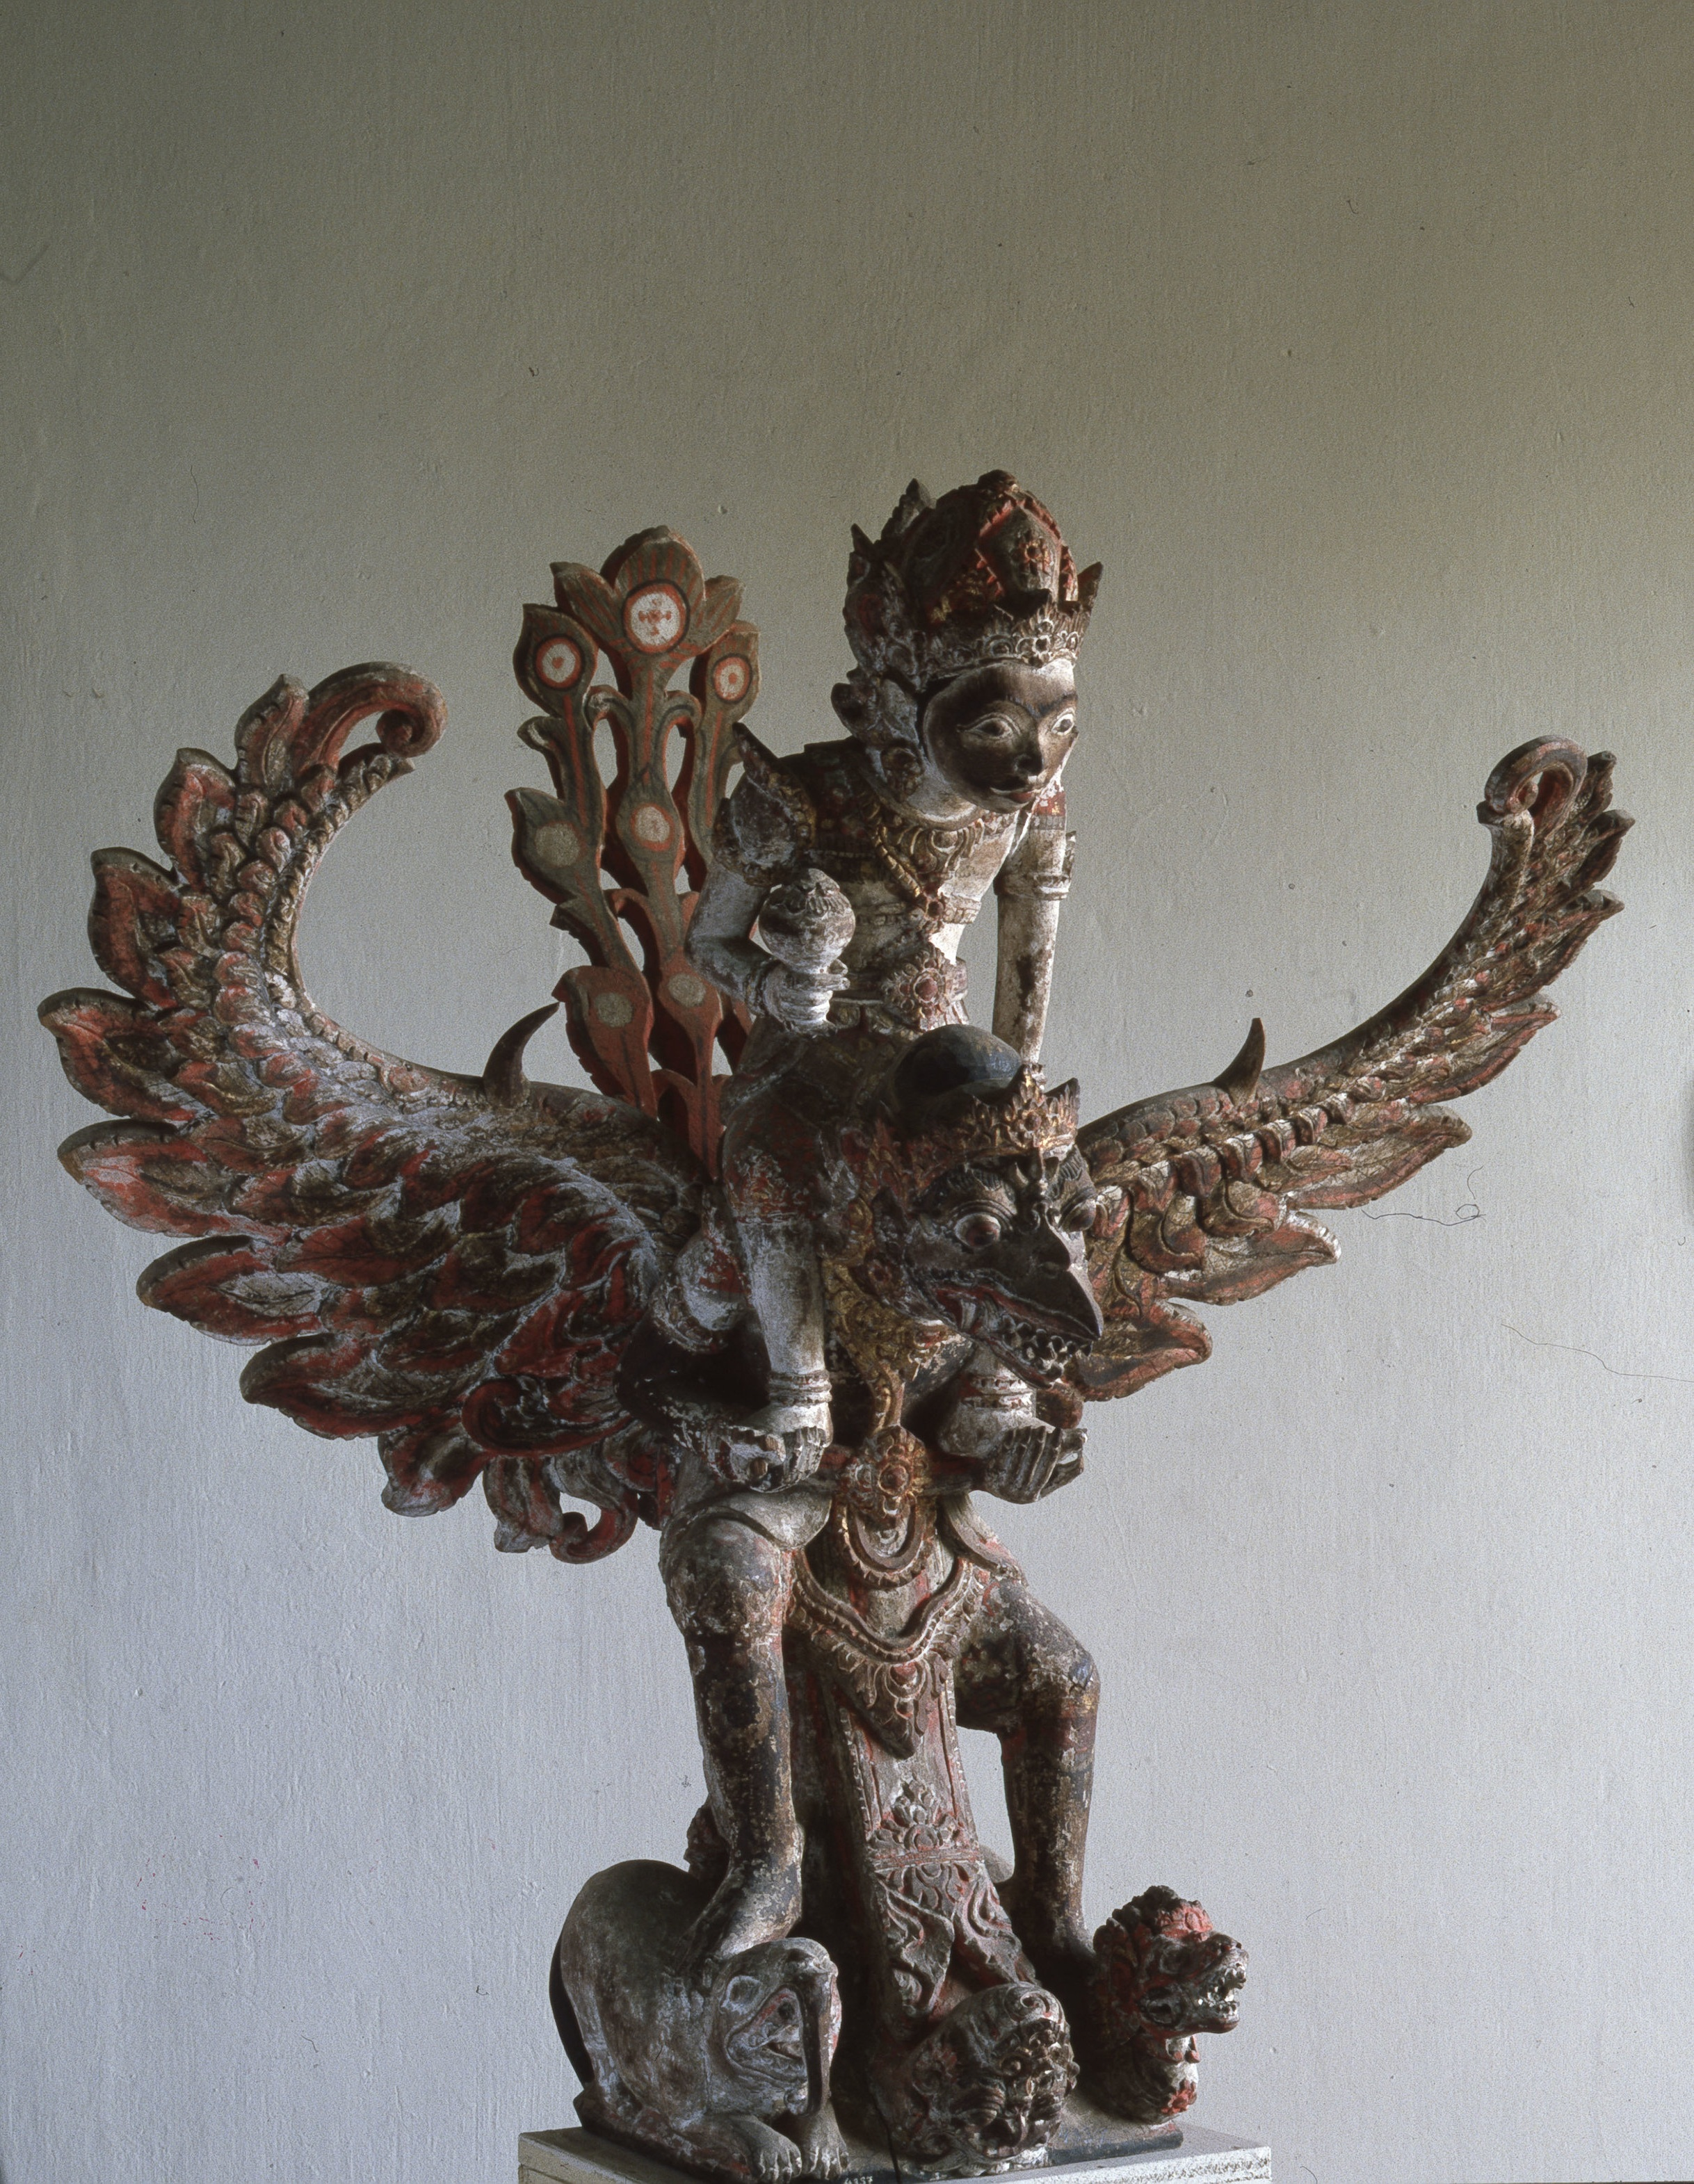 Vishnu (Wisnu) on his mount Garuda. A pillar base once mounted in the centre of the ridge-pole, high up under the roof of a pavilion. Country of Origin: Bali, Indonesia. Culture: Hindu. Credit Line: Werner Forman Archive/Denpasar Museum.